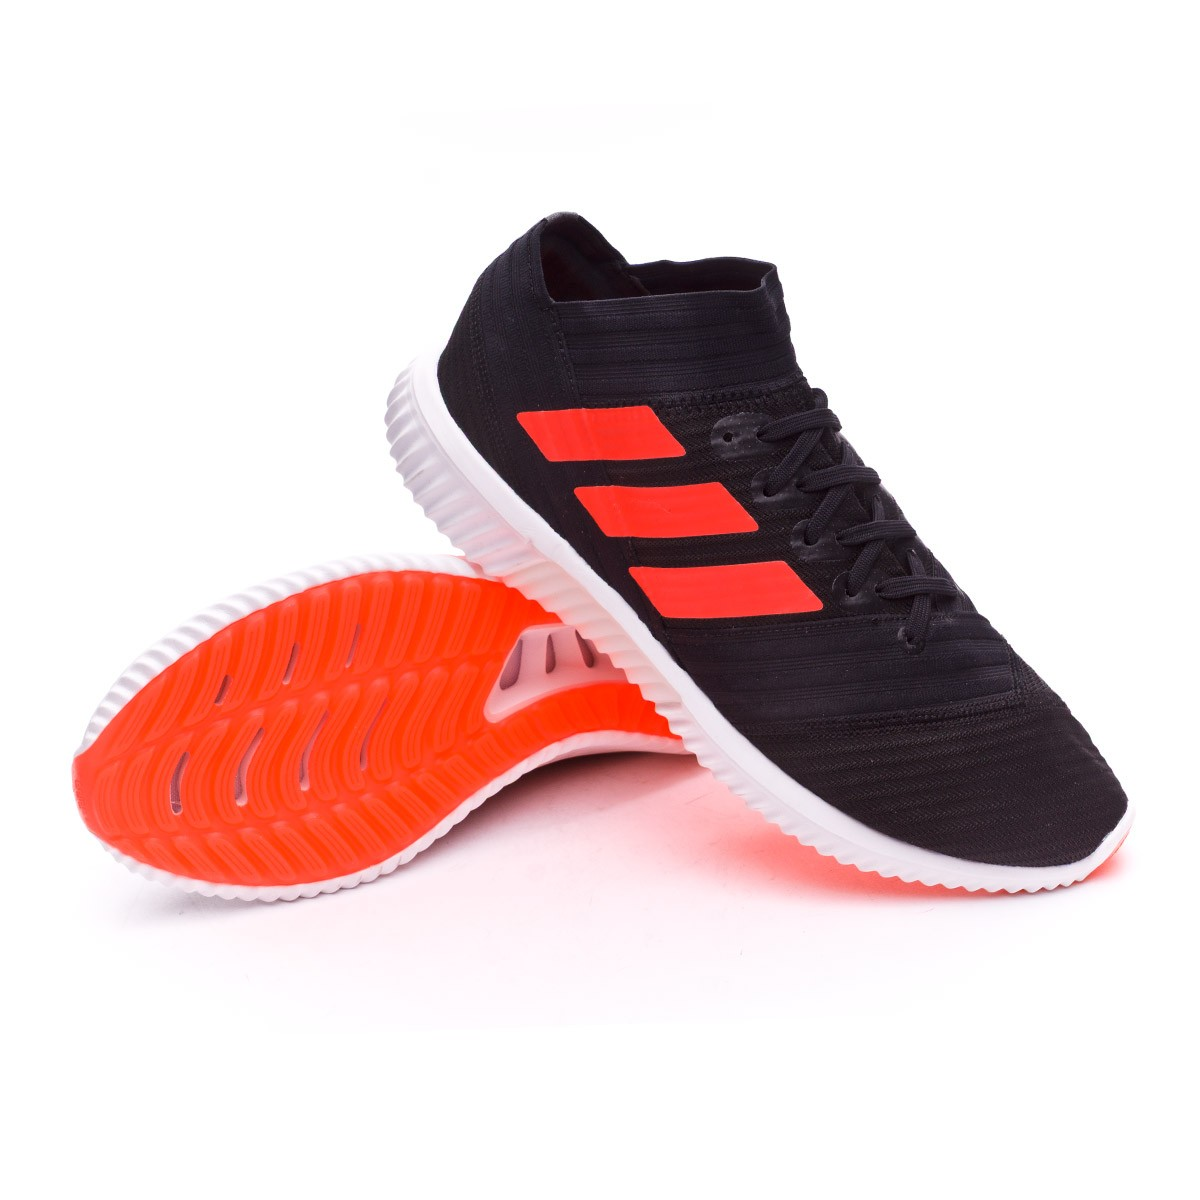 062851d009a67 Trainers adidas Nemeziz Tango 17.1 TR Core black-Solar red-White ...